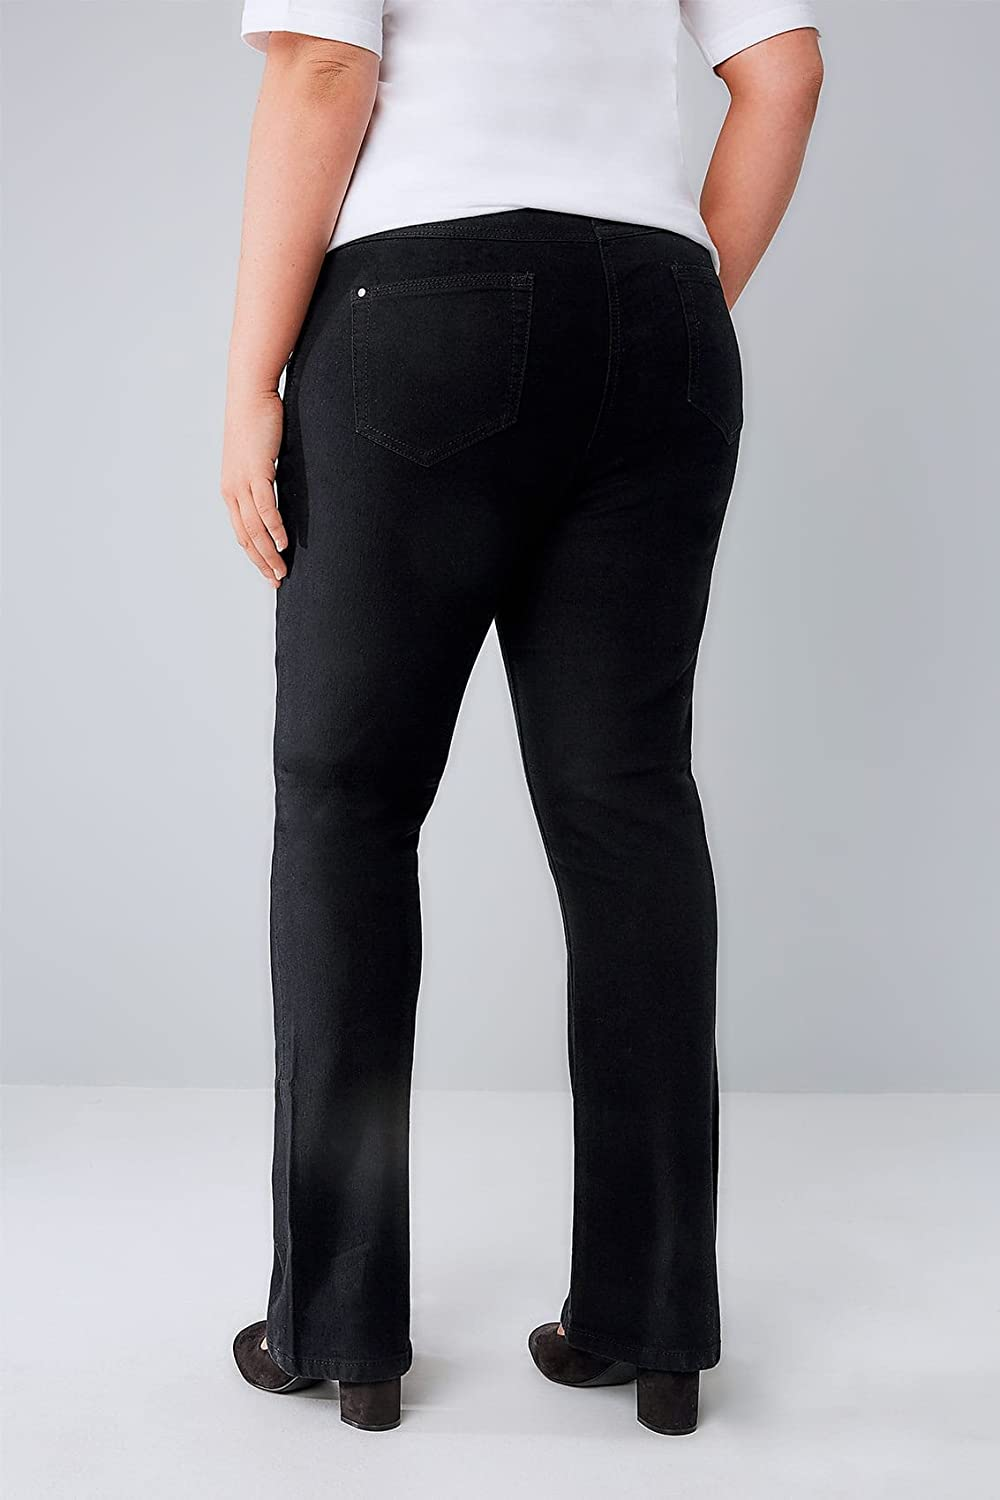 Yours Clothing Womens Bootcut ISLA Jeans